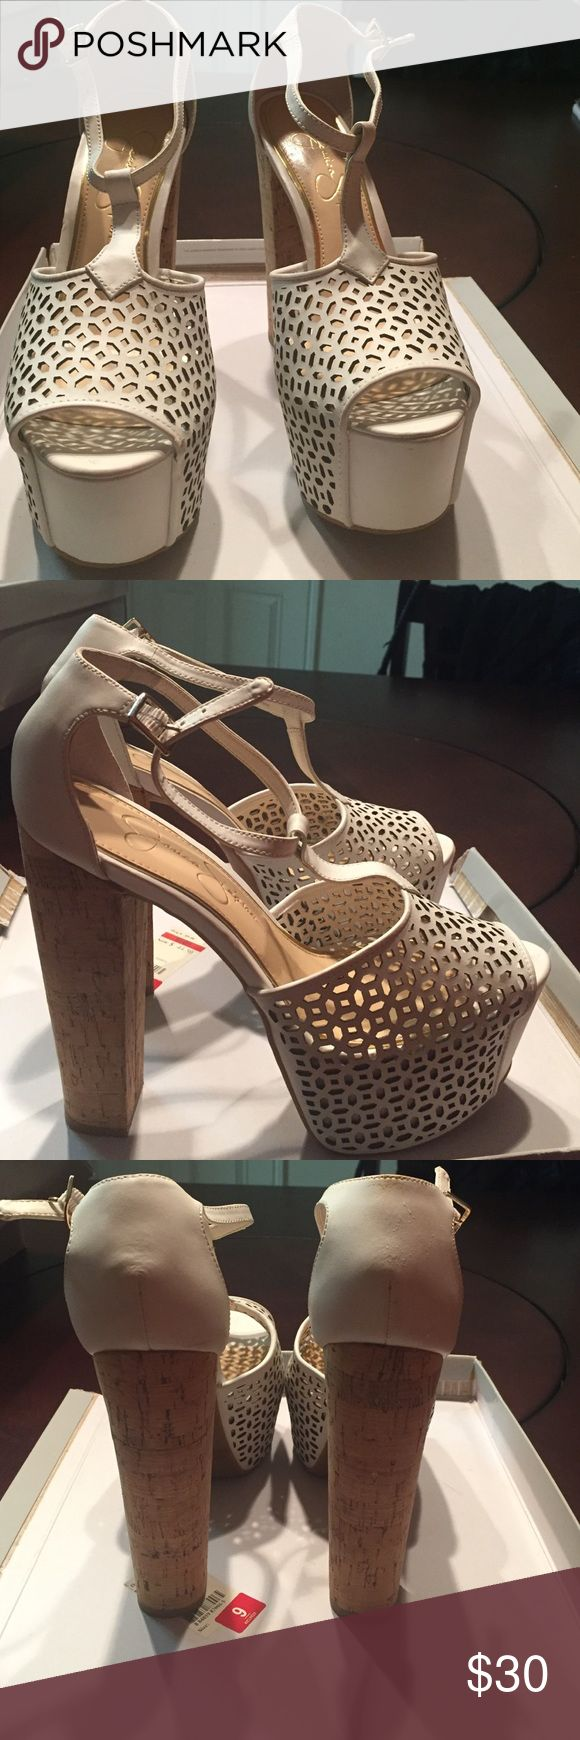 White with cork heel Danny5 by Jessica Simpson Lightly worn white heeled sandal Jessica Simpson Shoes Sandals